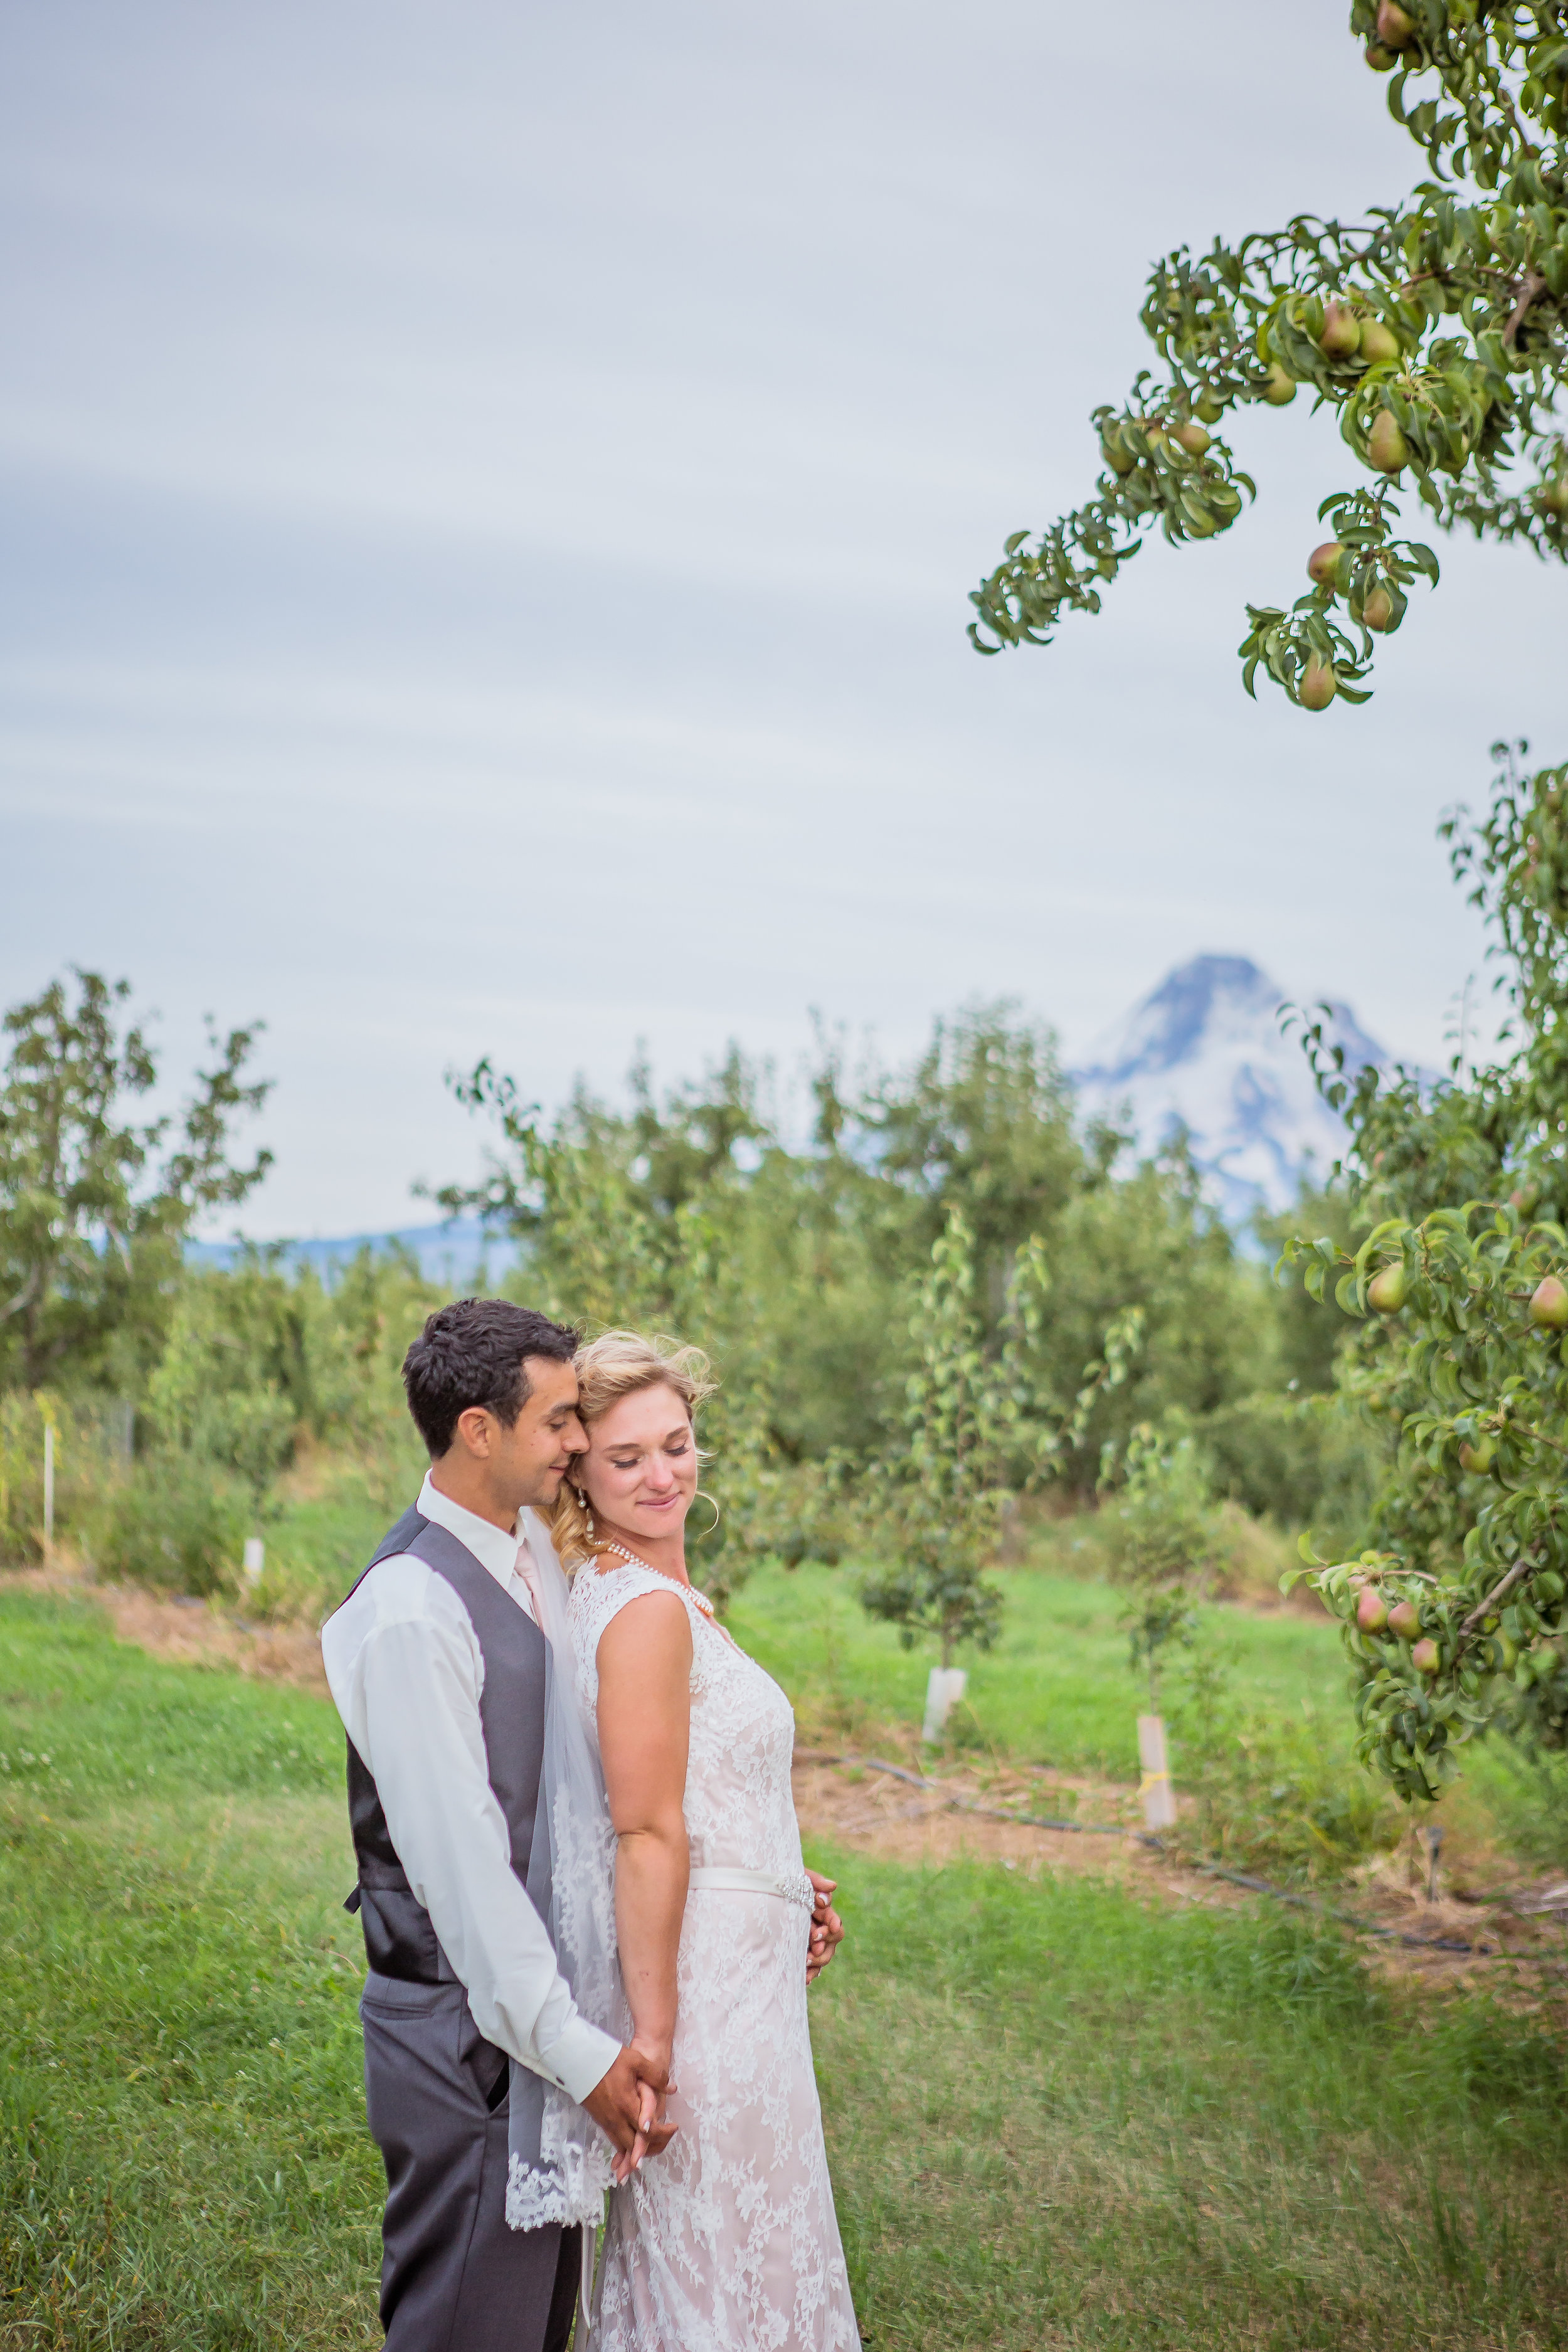 Lisa+Ricardo Wedding_2016-08-13-1050.jpg